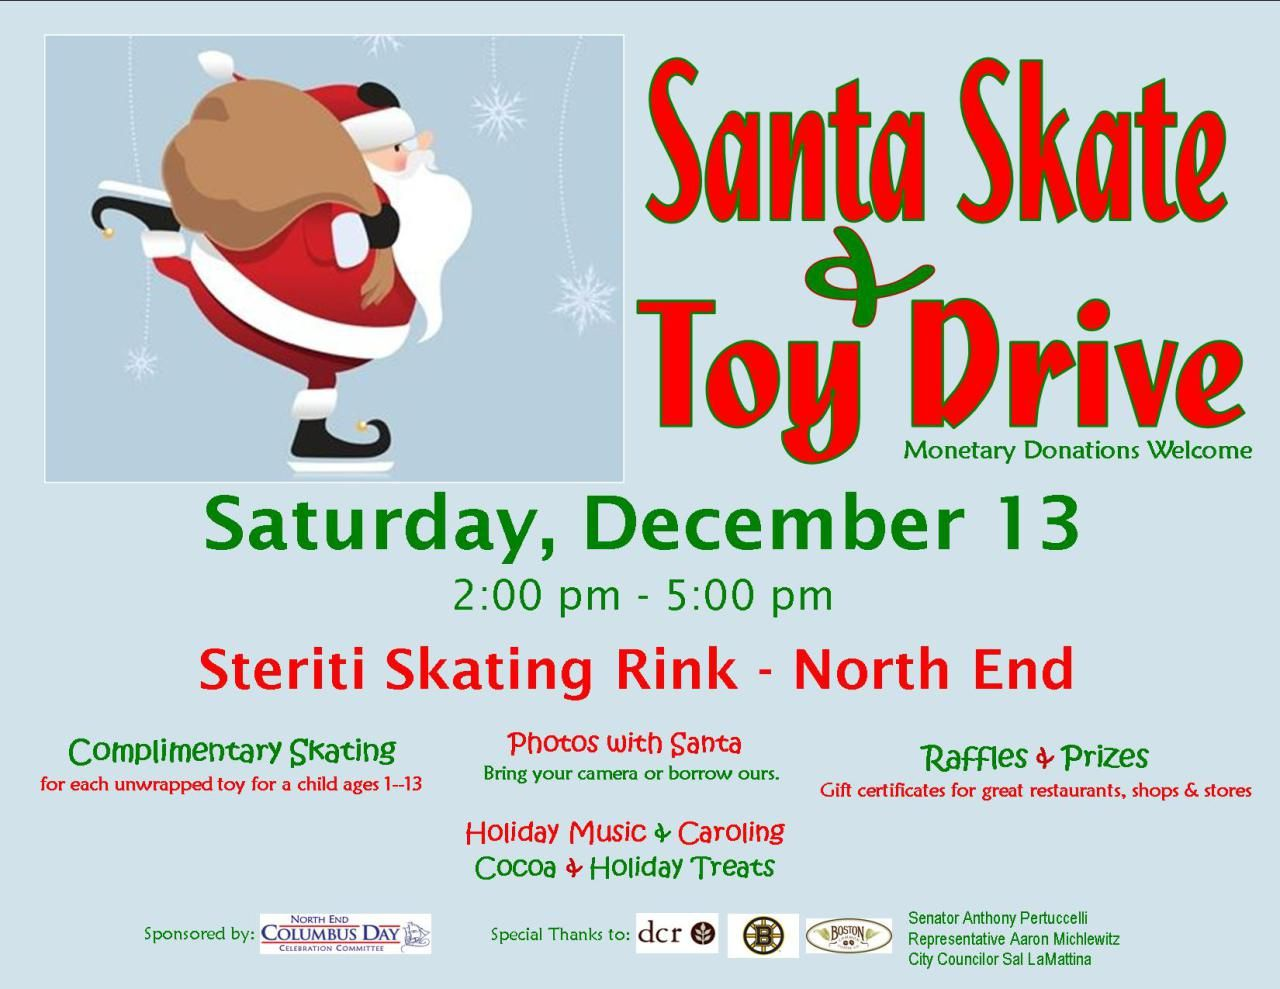 Santa Skate Toy Drive Sponsored By The North End Columbus Day Celebration Committee Saturday December 13 2 00 5 00 Pm Toy Drive Holiday Music Raffle Prizes